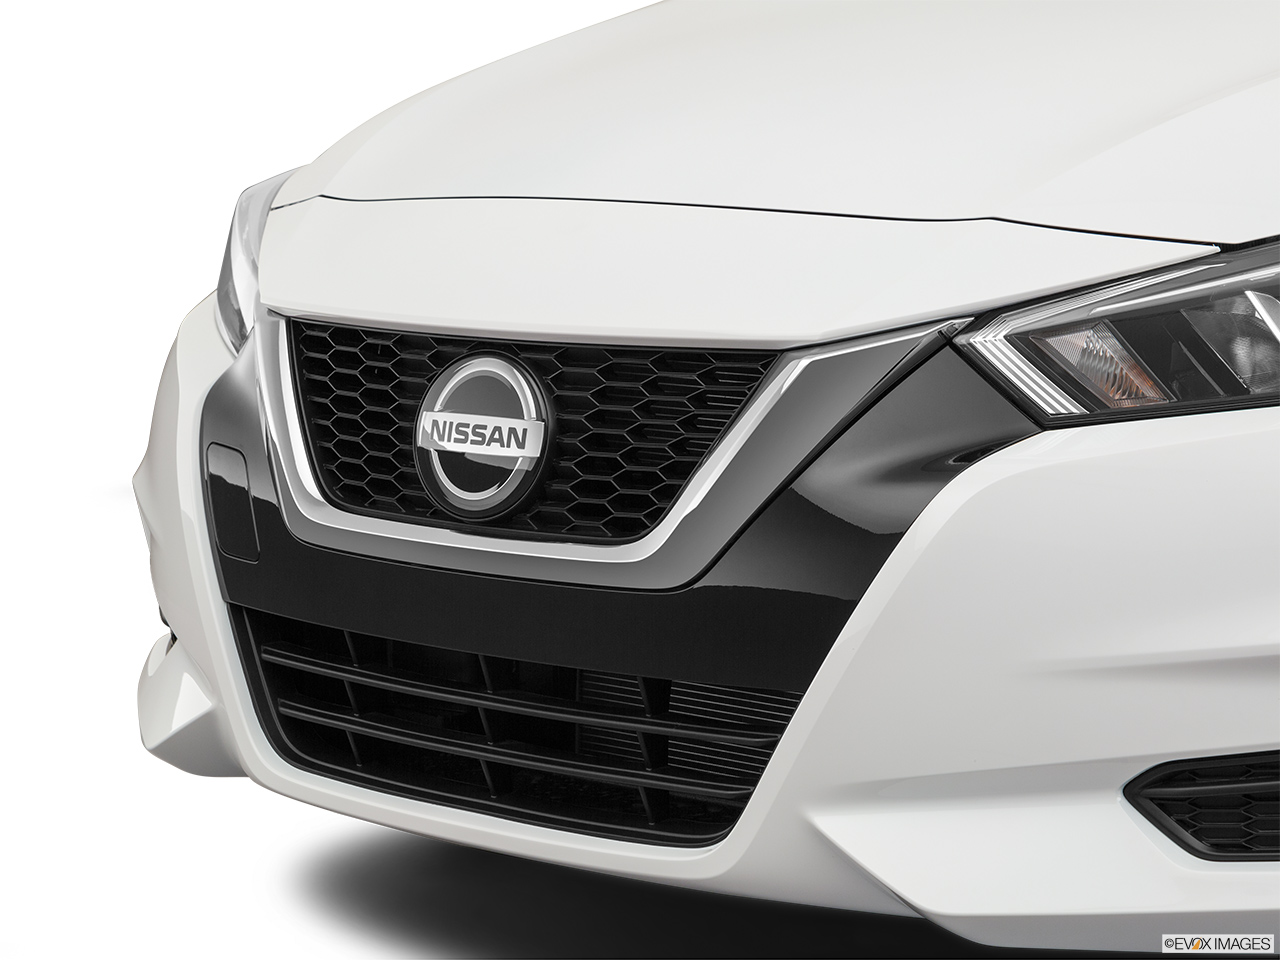 Nissan Sunny 2020 1.6L S A/T in UAE: New Car Prices, Specs ...